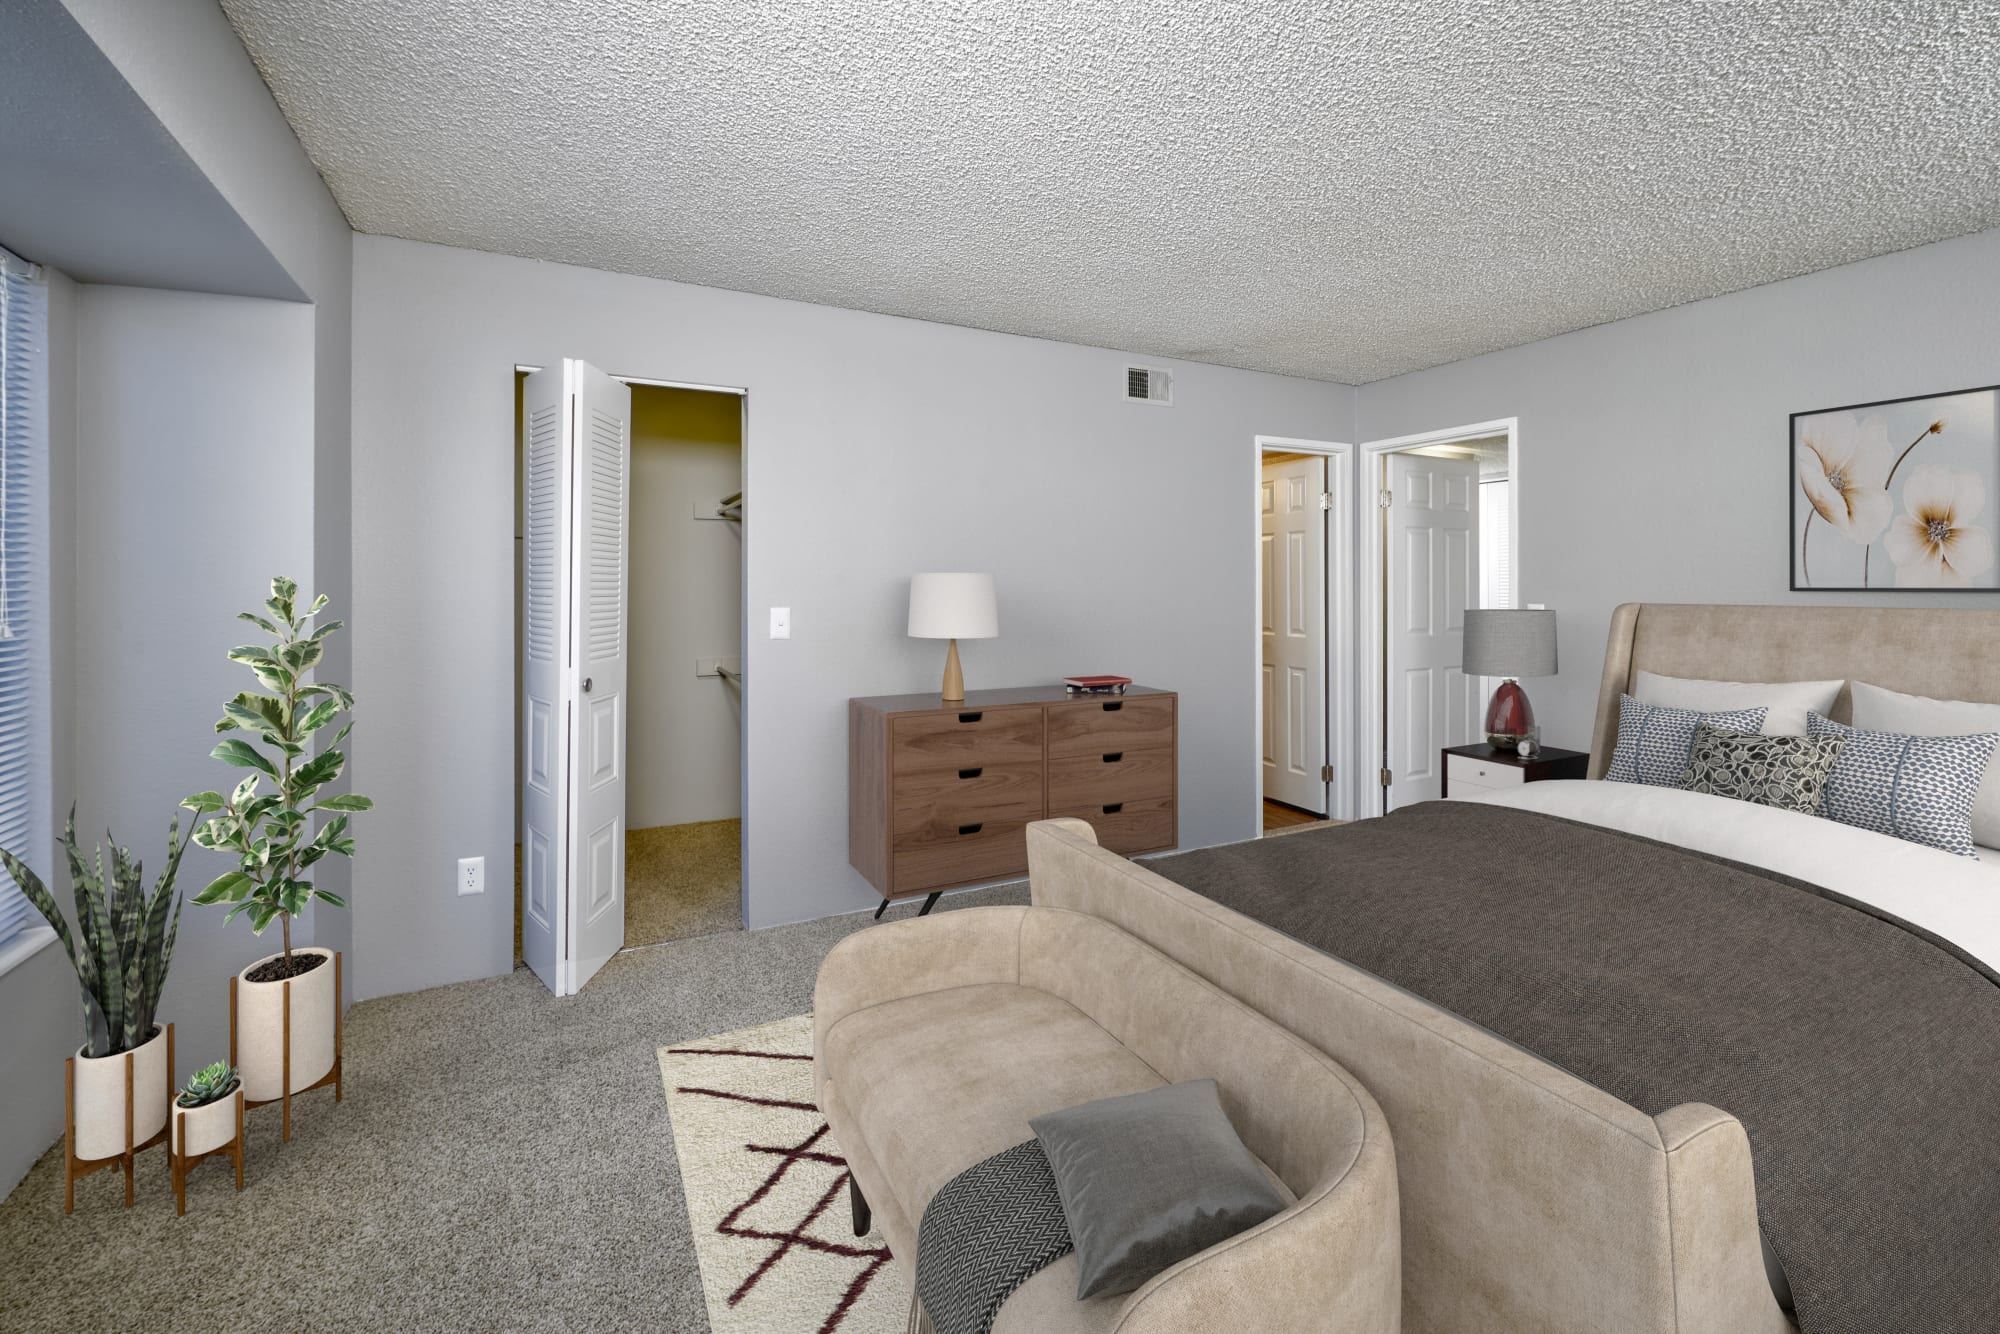 Spacious master bedroom at Alton Green Apartments in Denver, Colorado